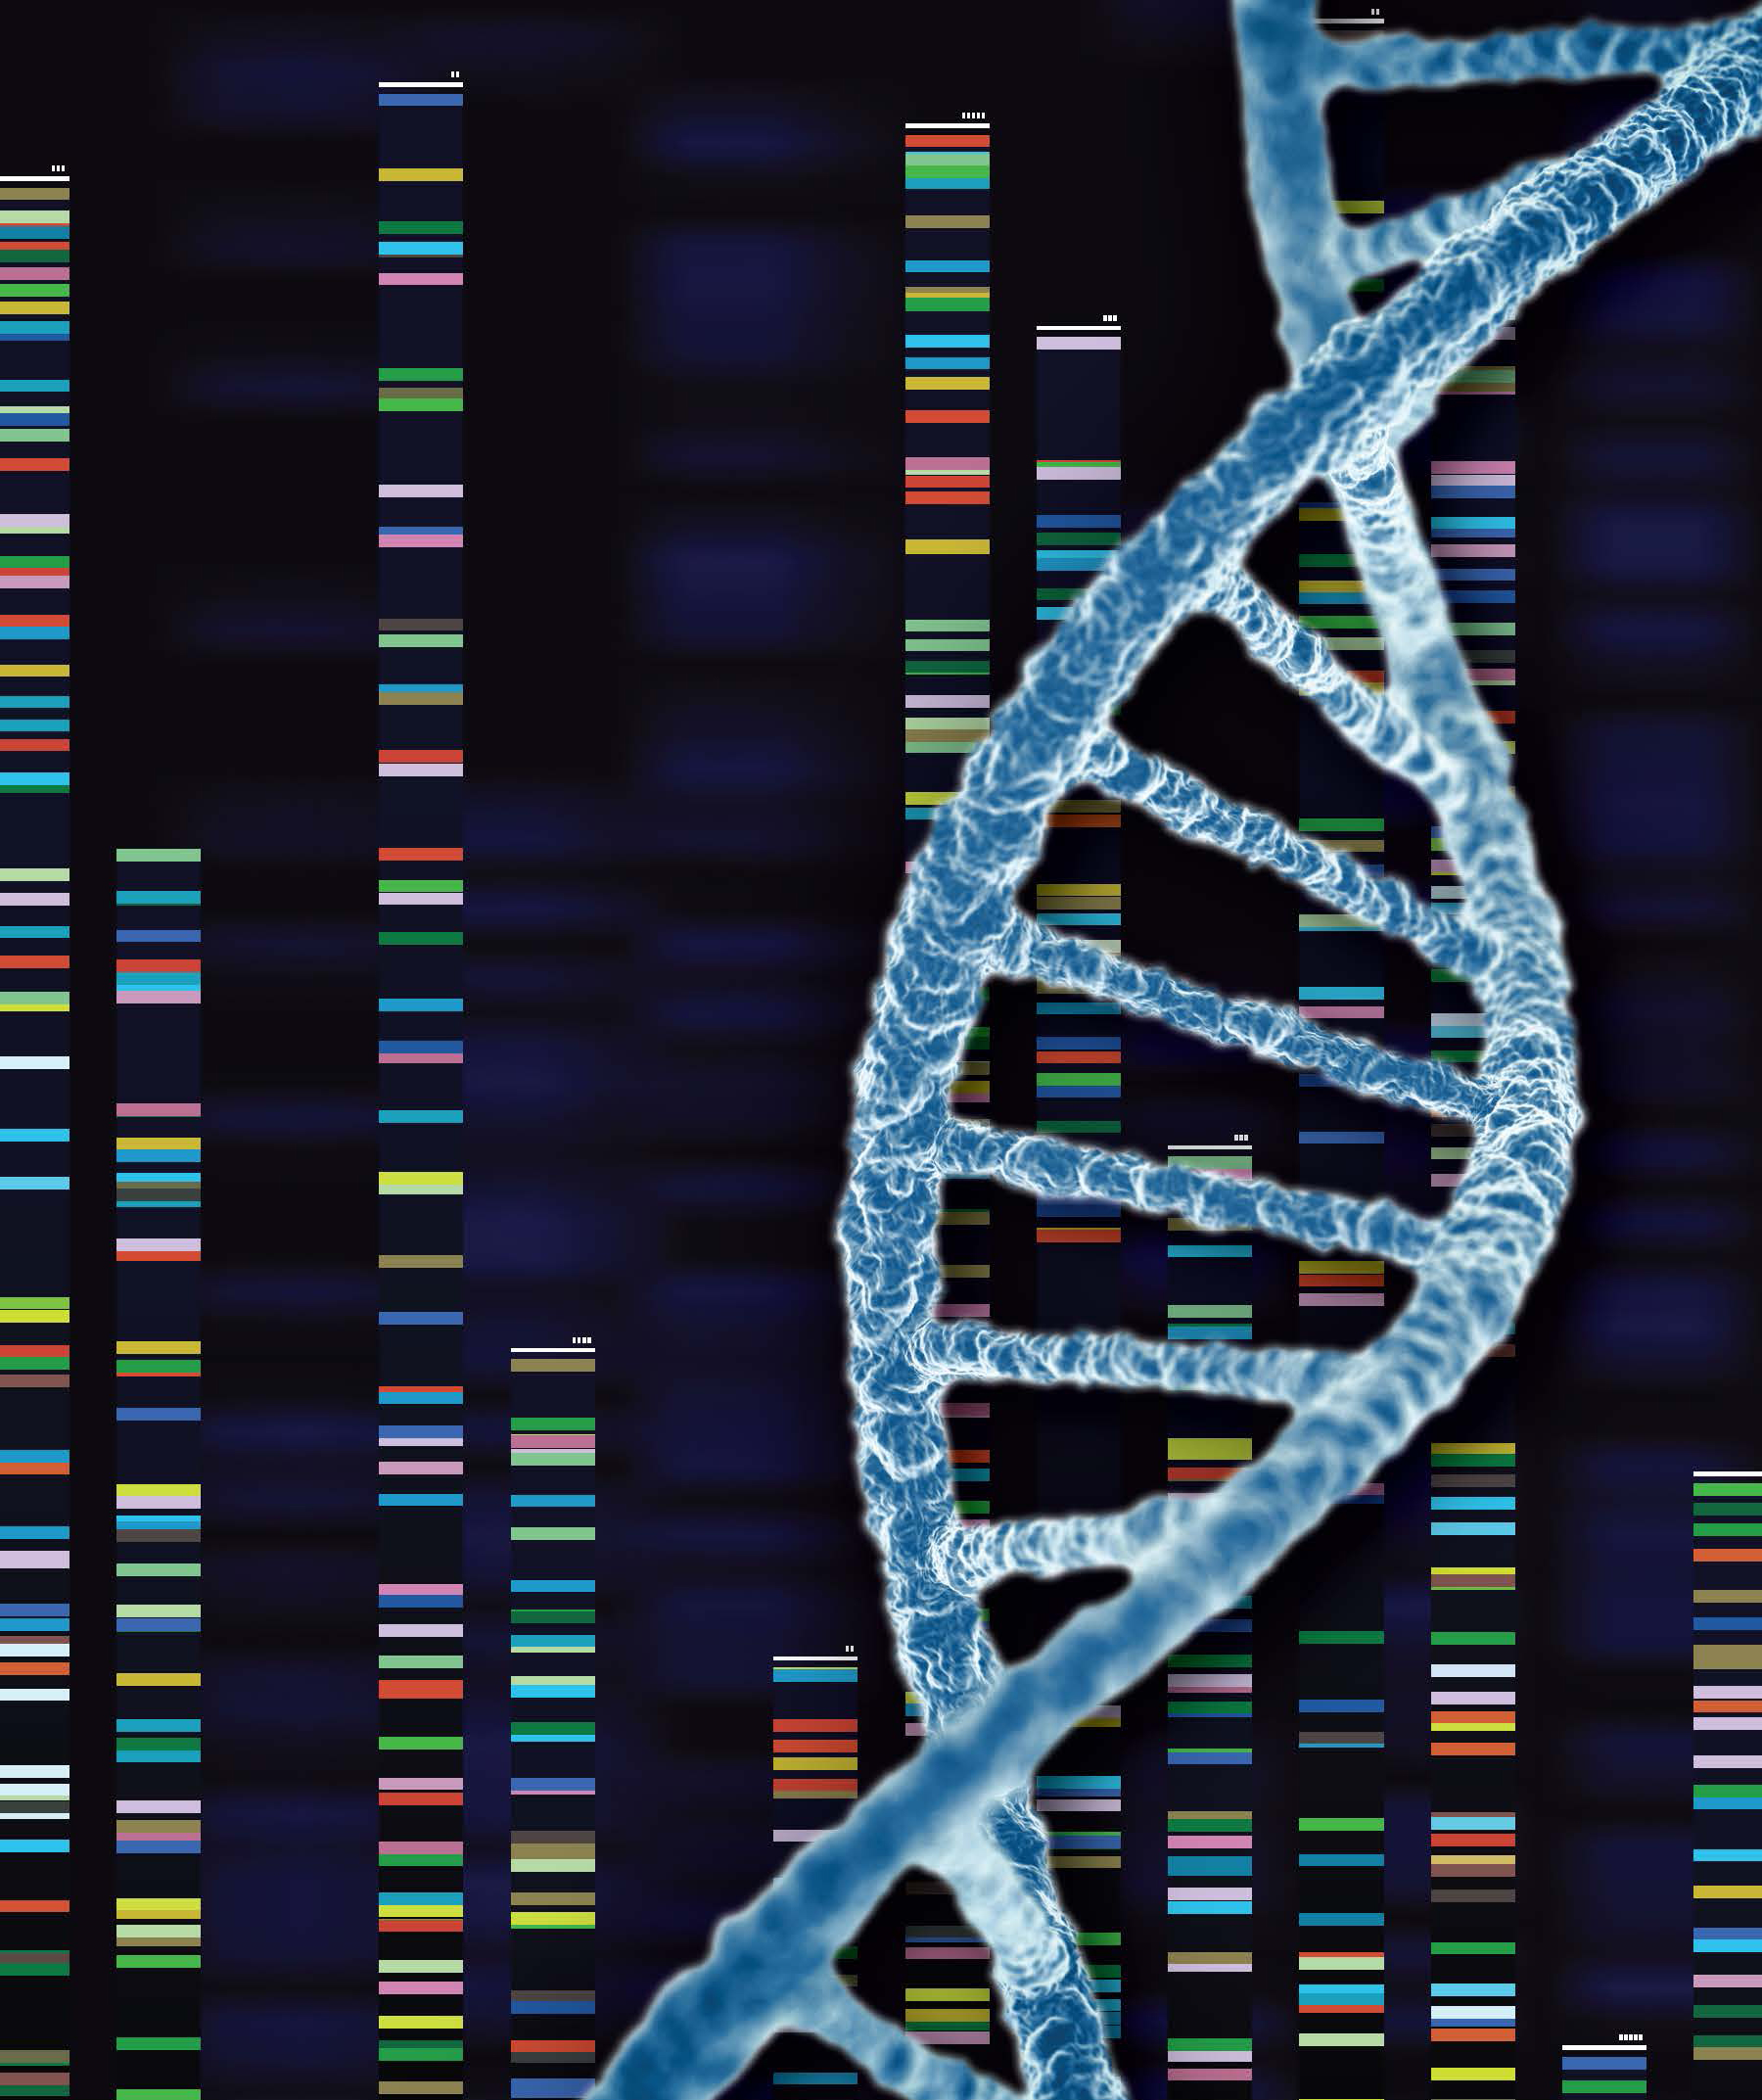 A graphic of a DNA strand and genomic analysis.